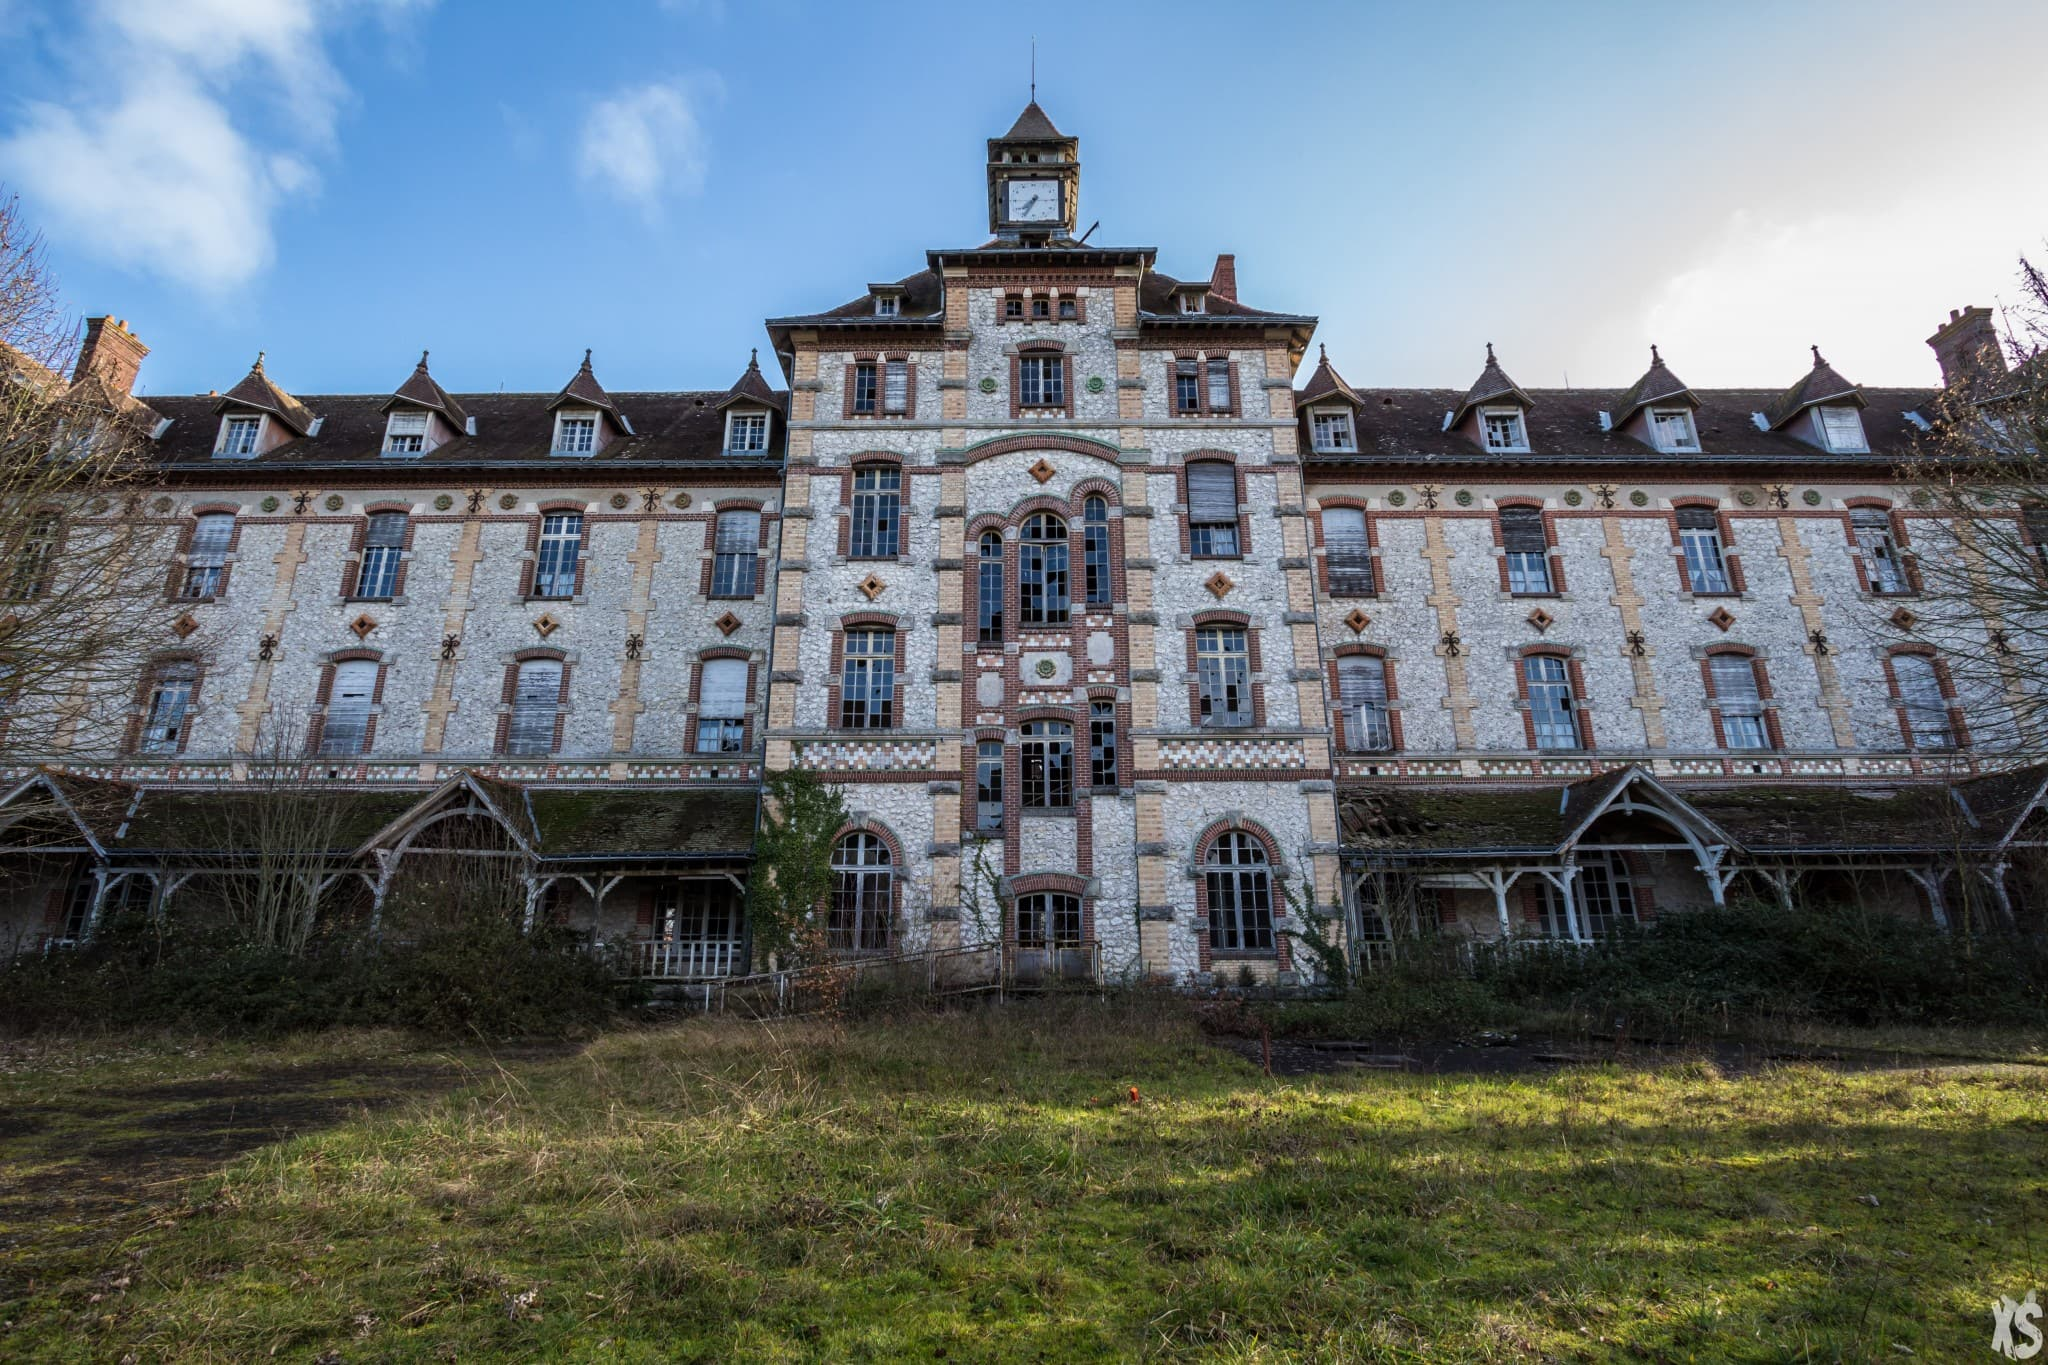 Abandoned orphanage in France | urbexsession.com/en/emile-louis-orphanage | Urbex France